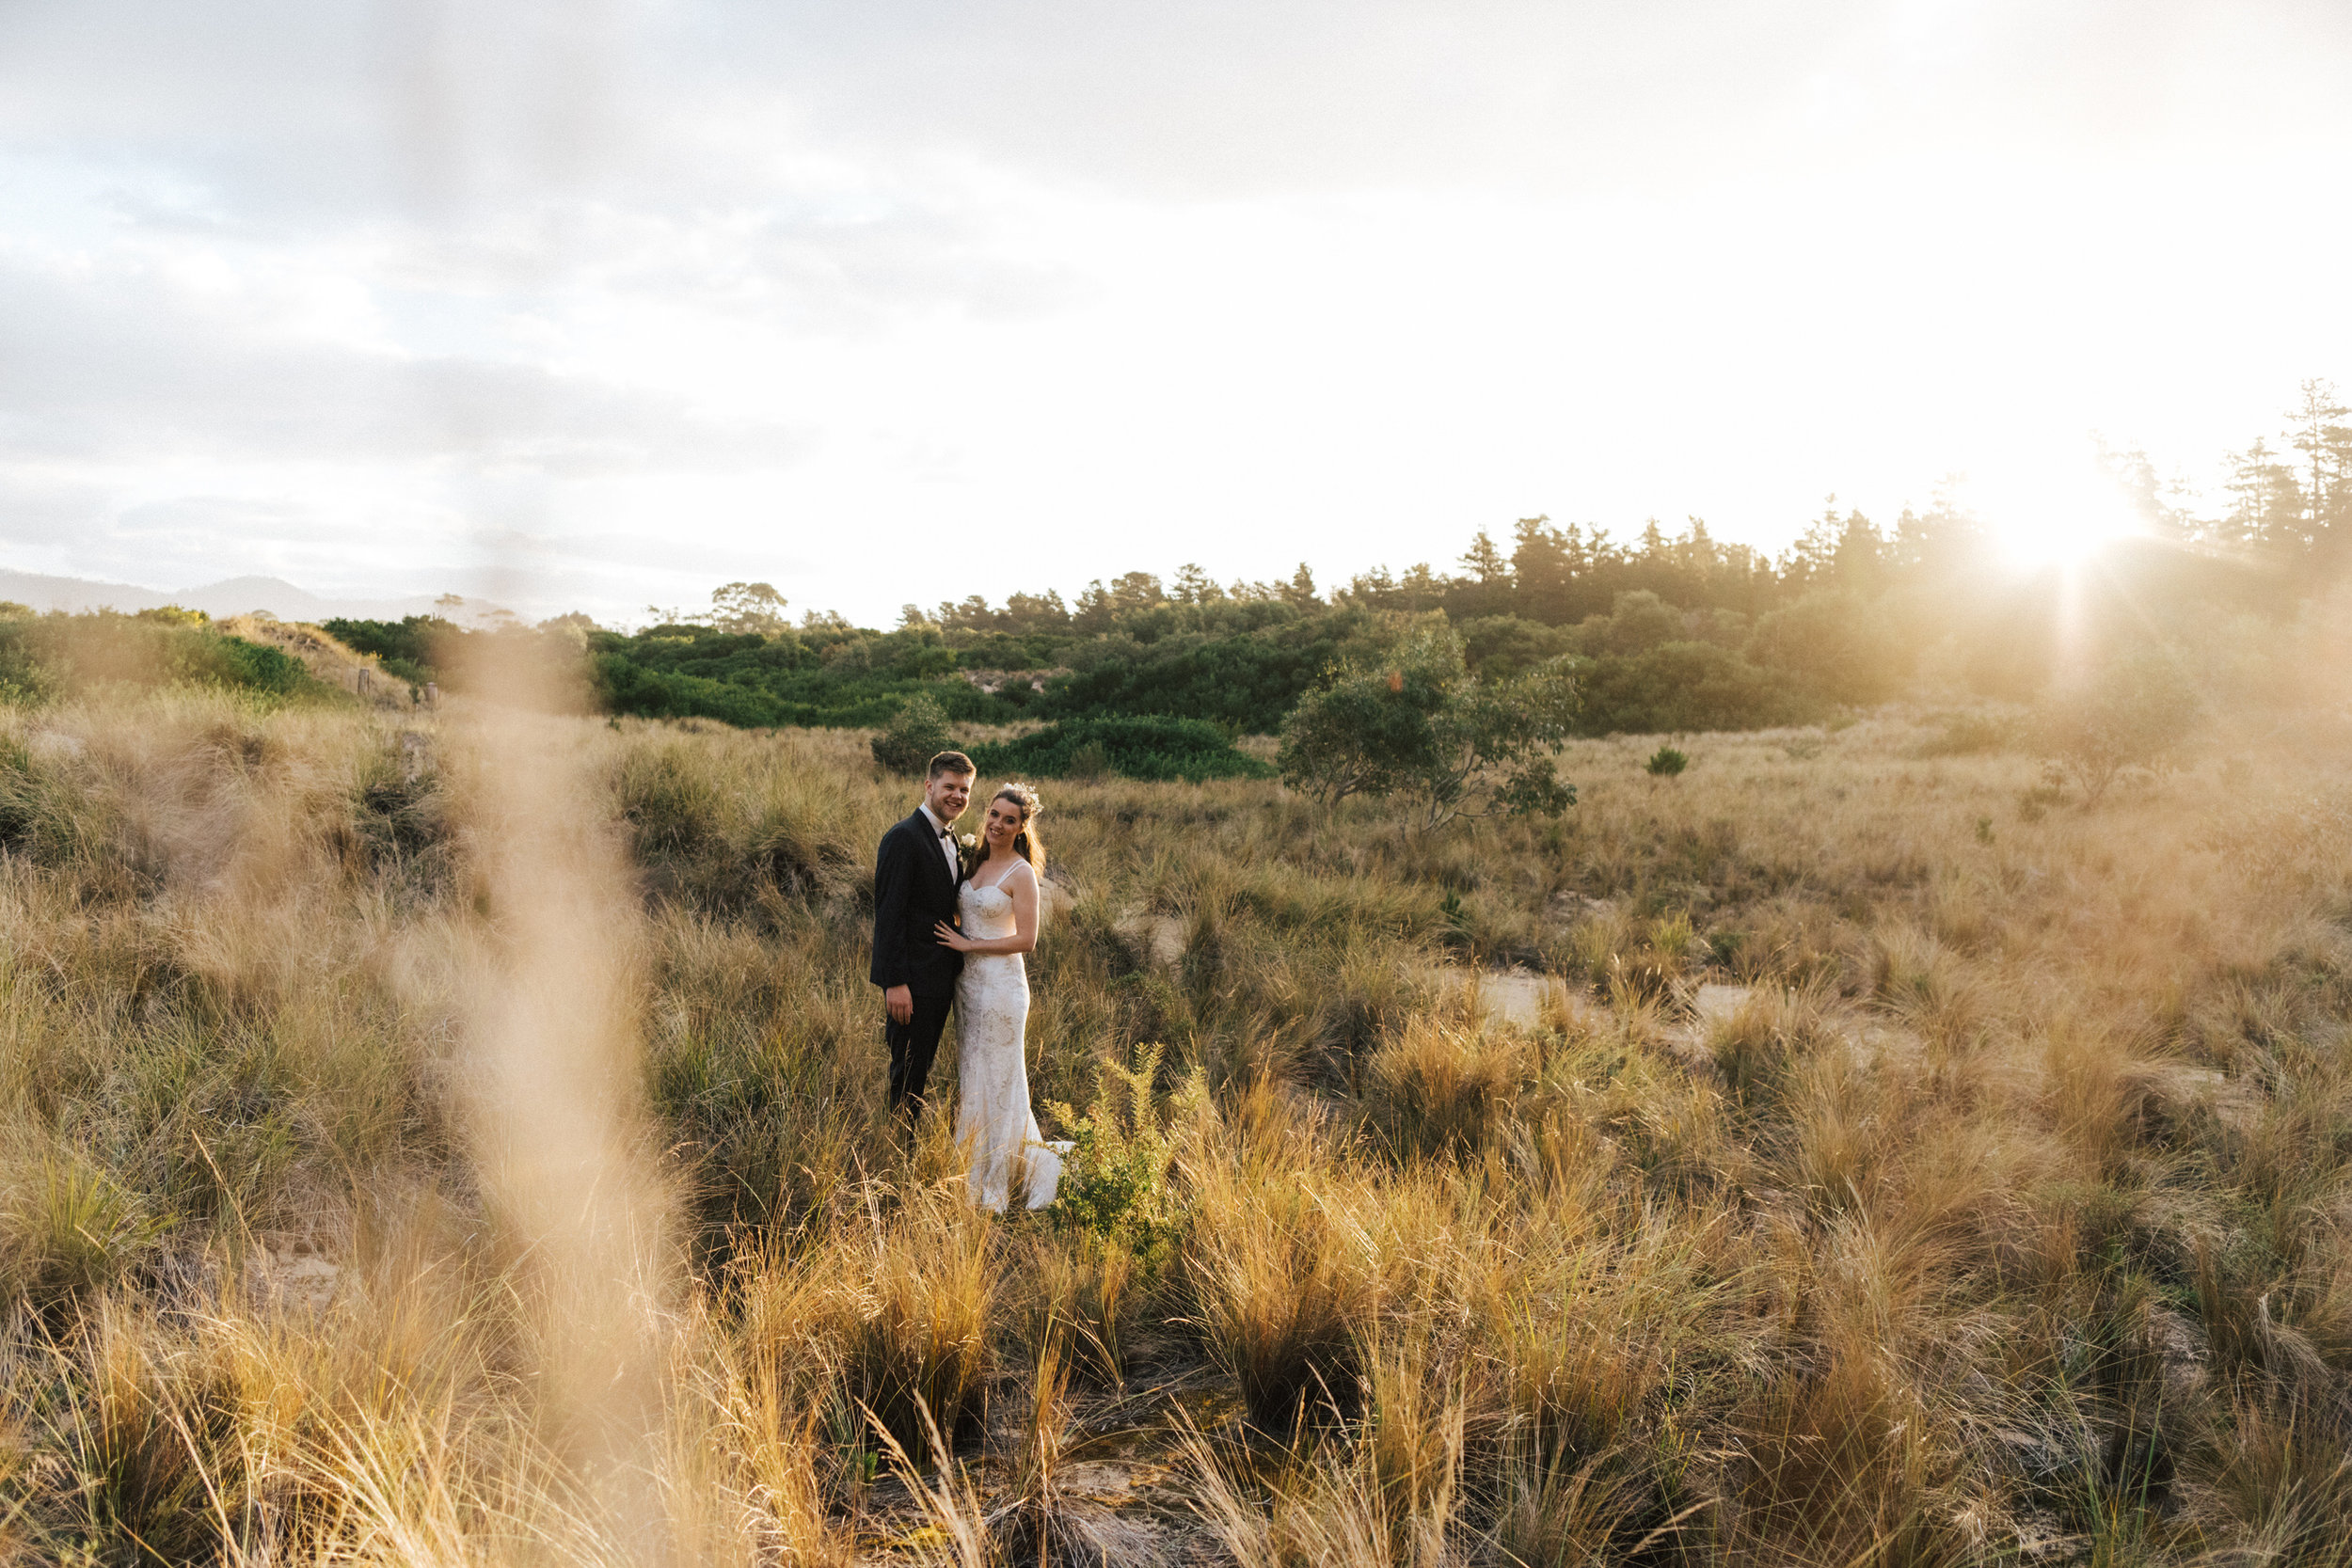 Wedding Photography Tasmania 102.jpg